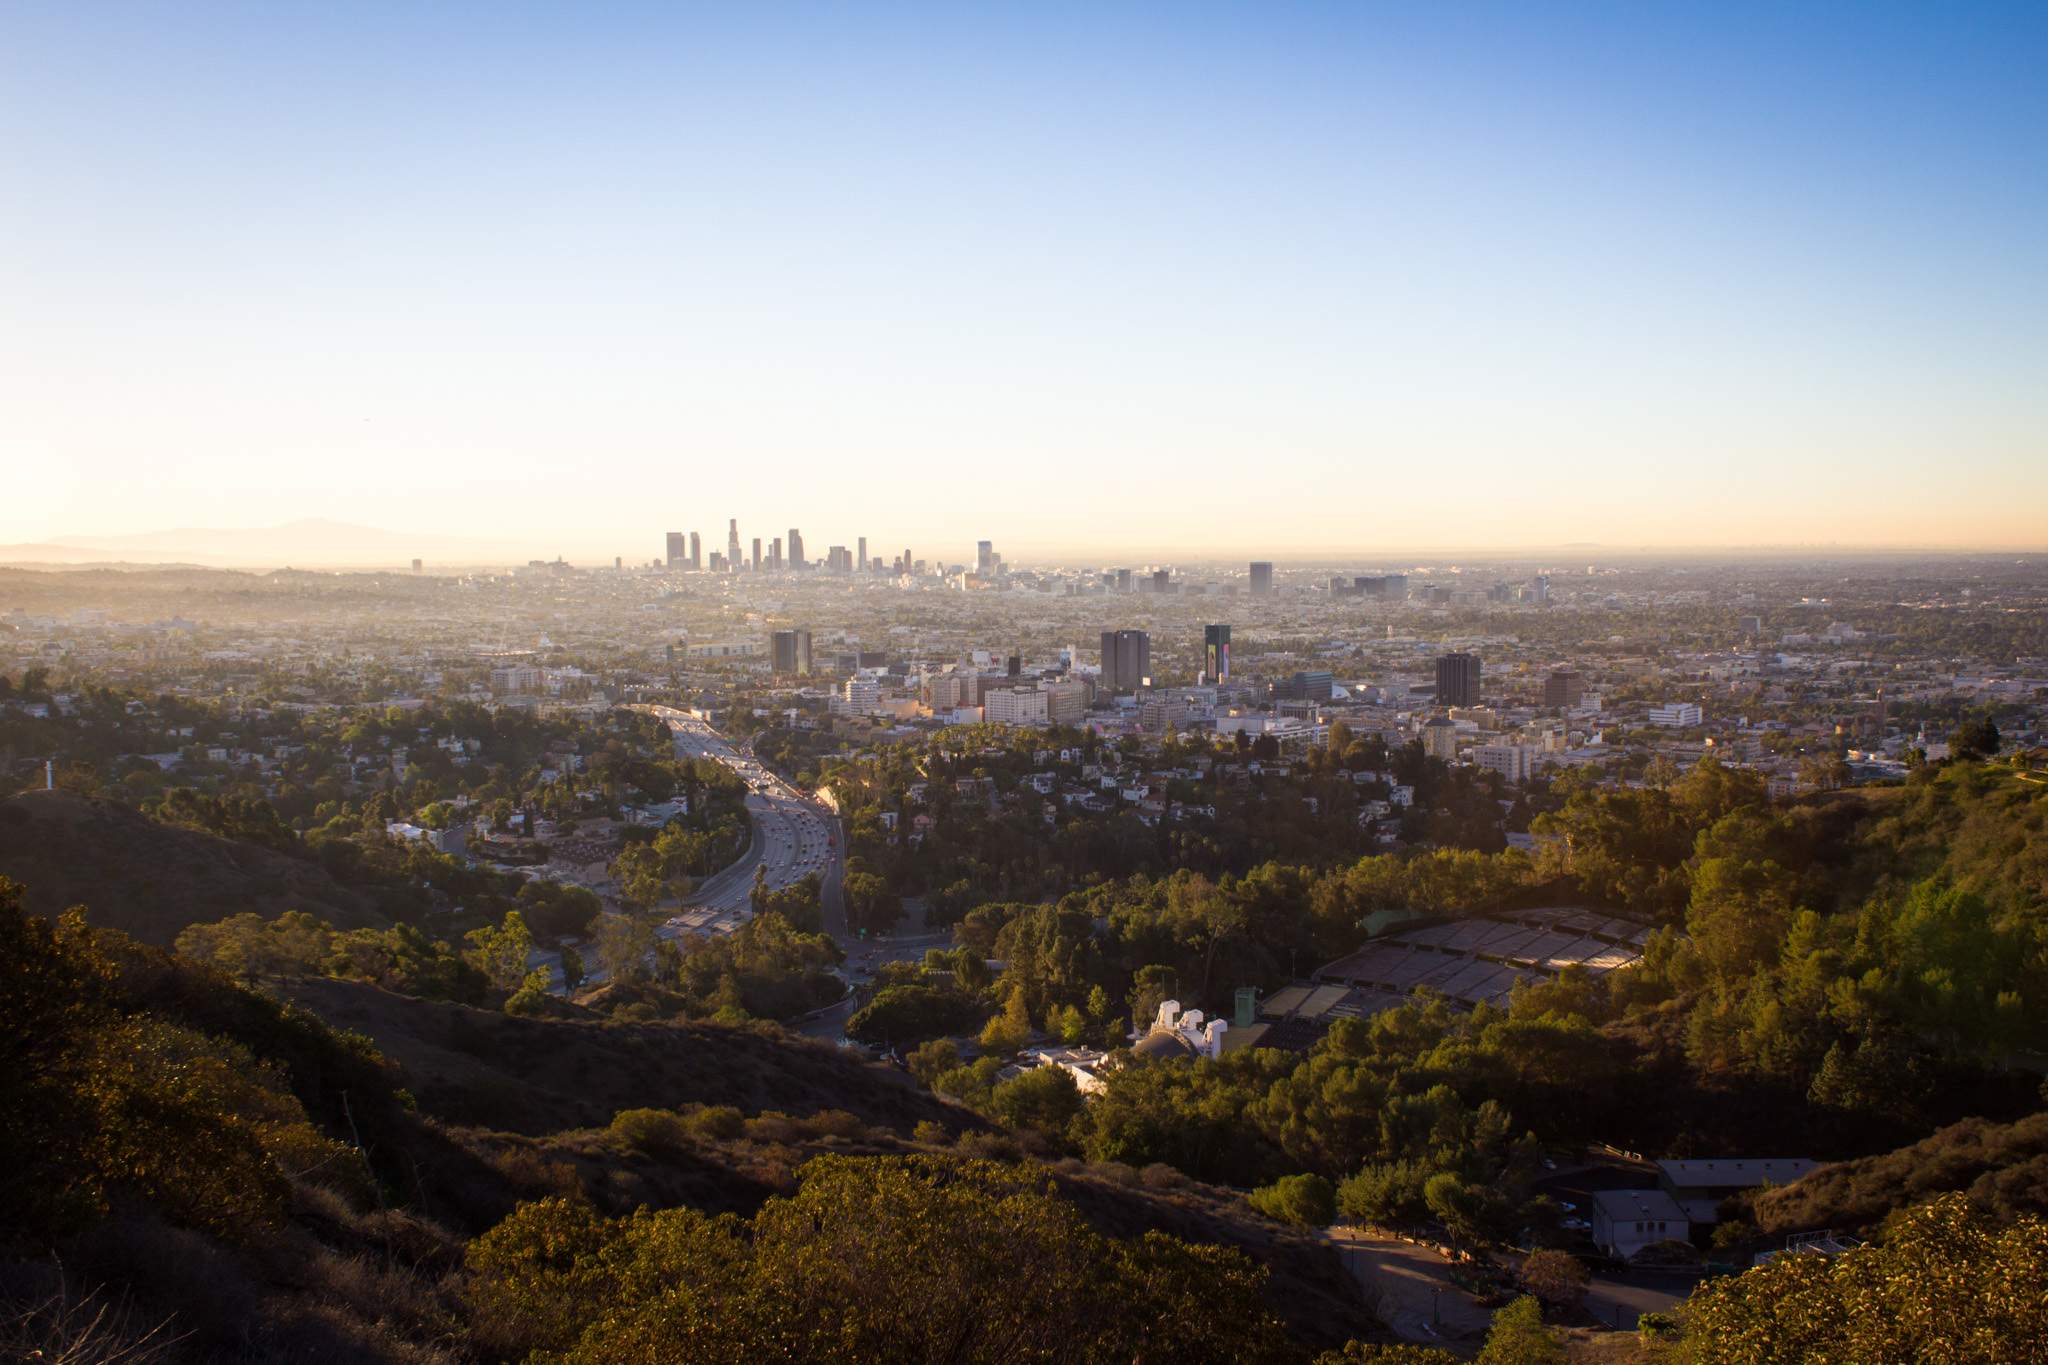 The 7 reasons why September in L.A. kicks ass